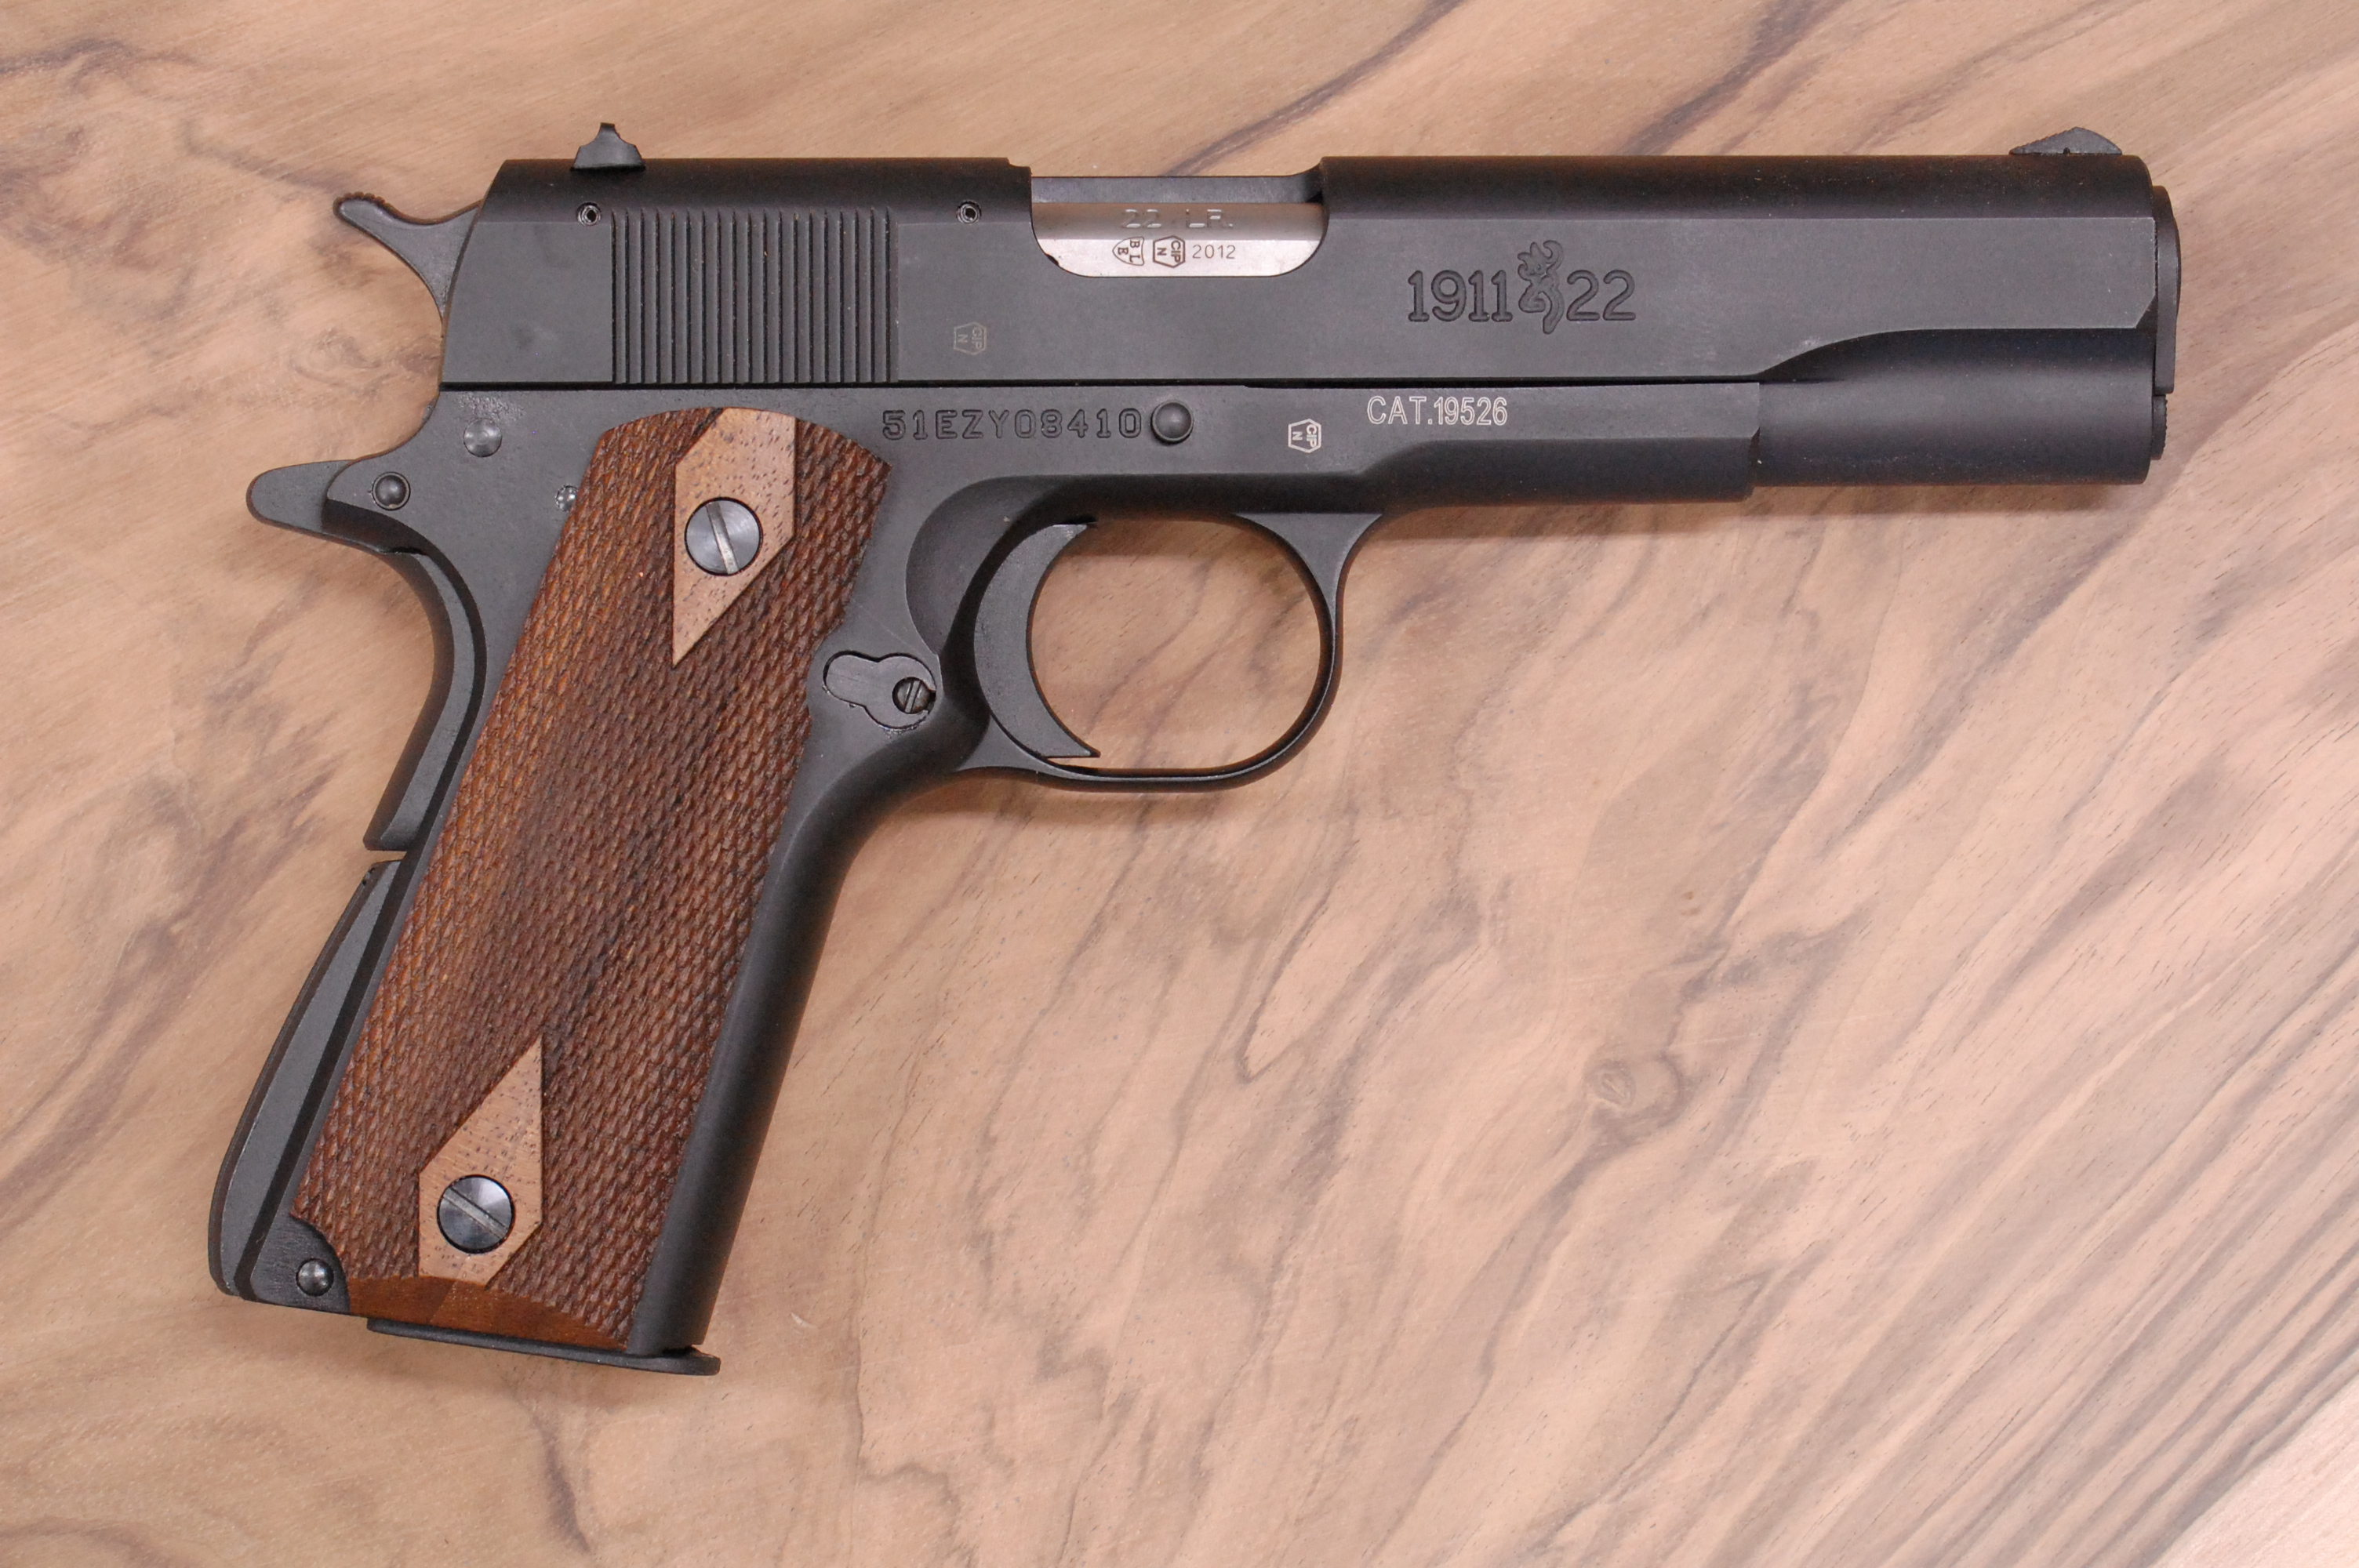 BROWNING 1911-22 grips (checkered) - full size